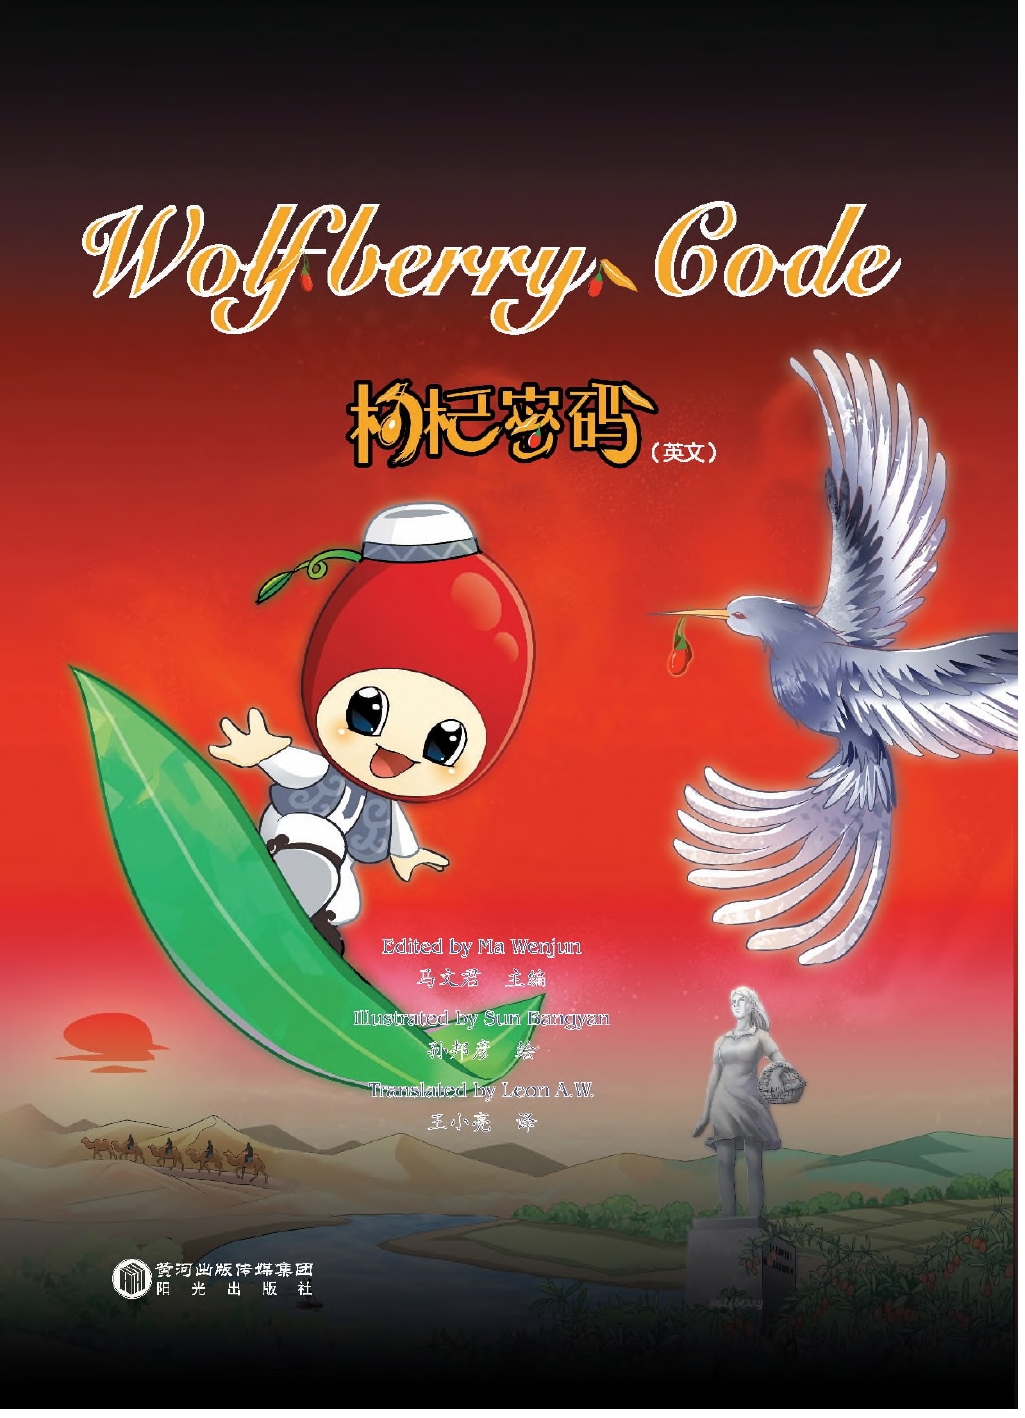 Wolfberry Code